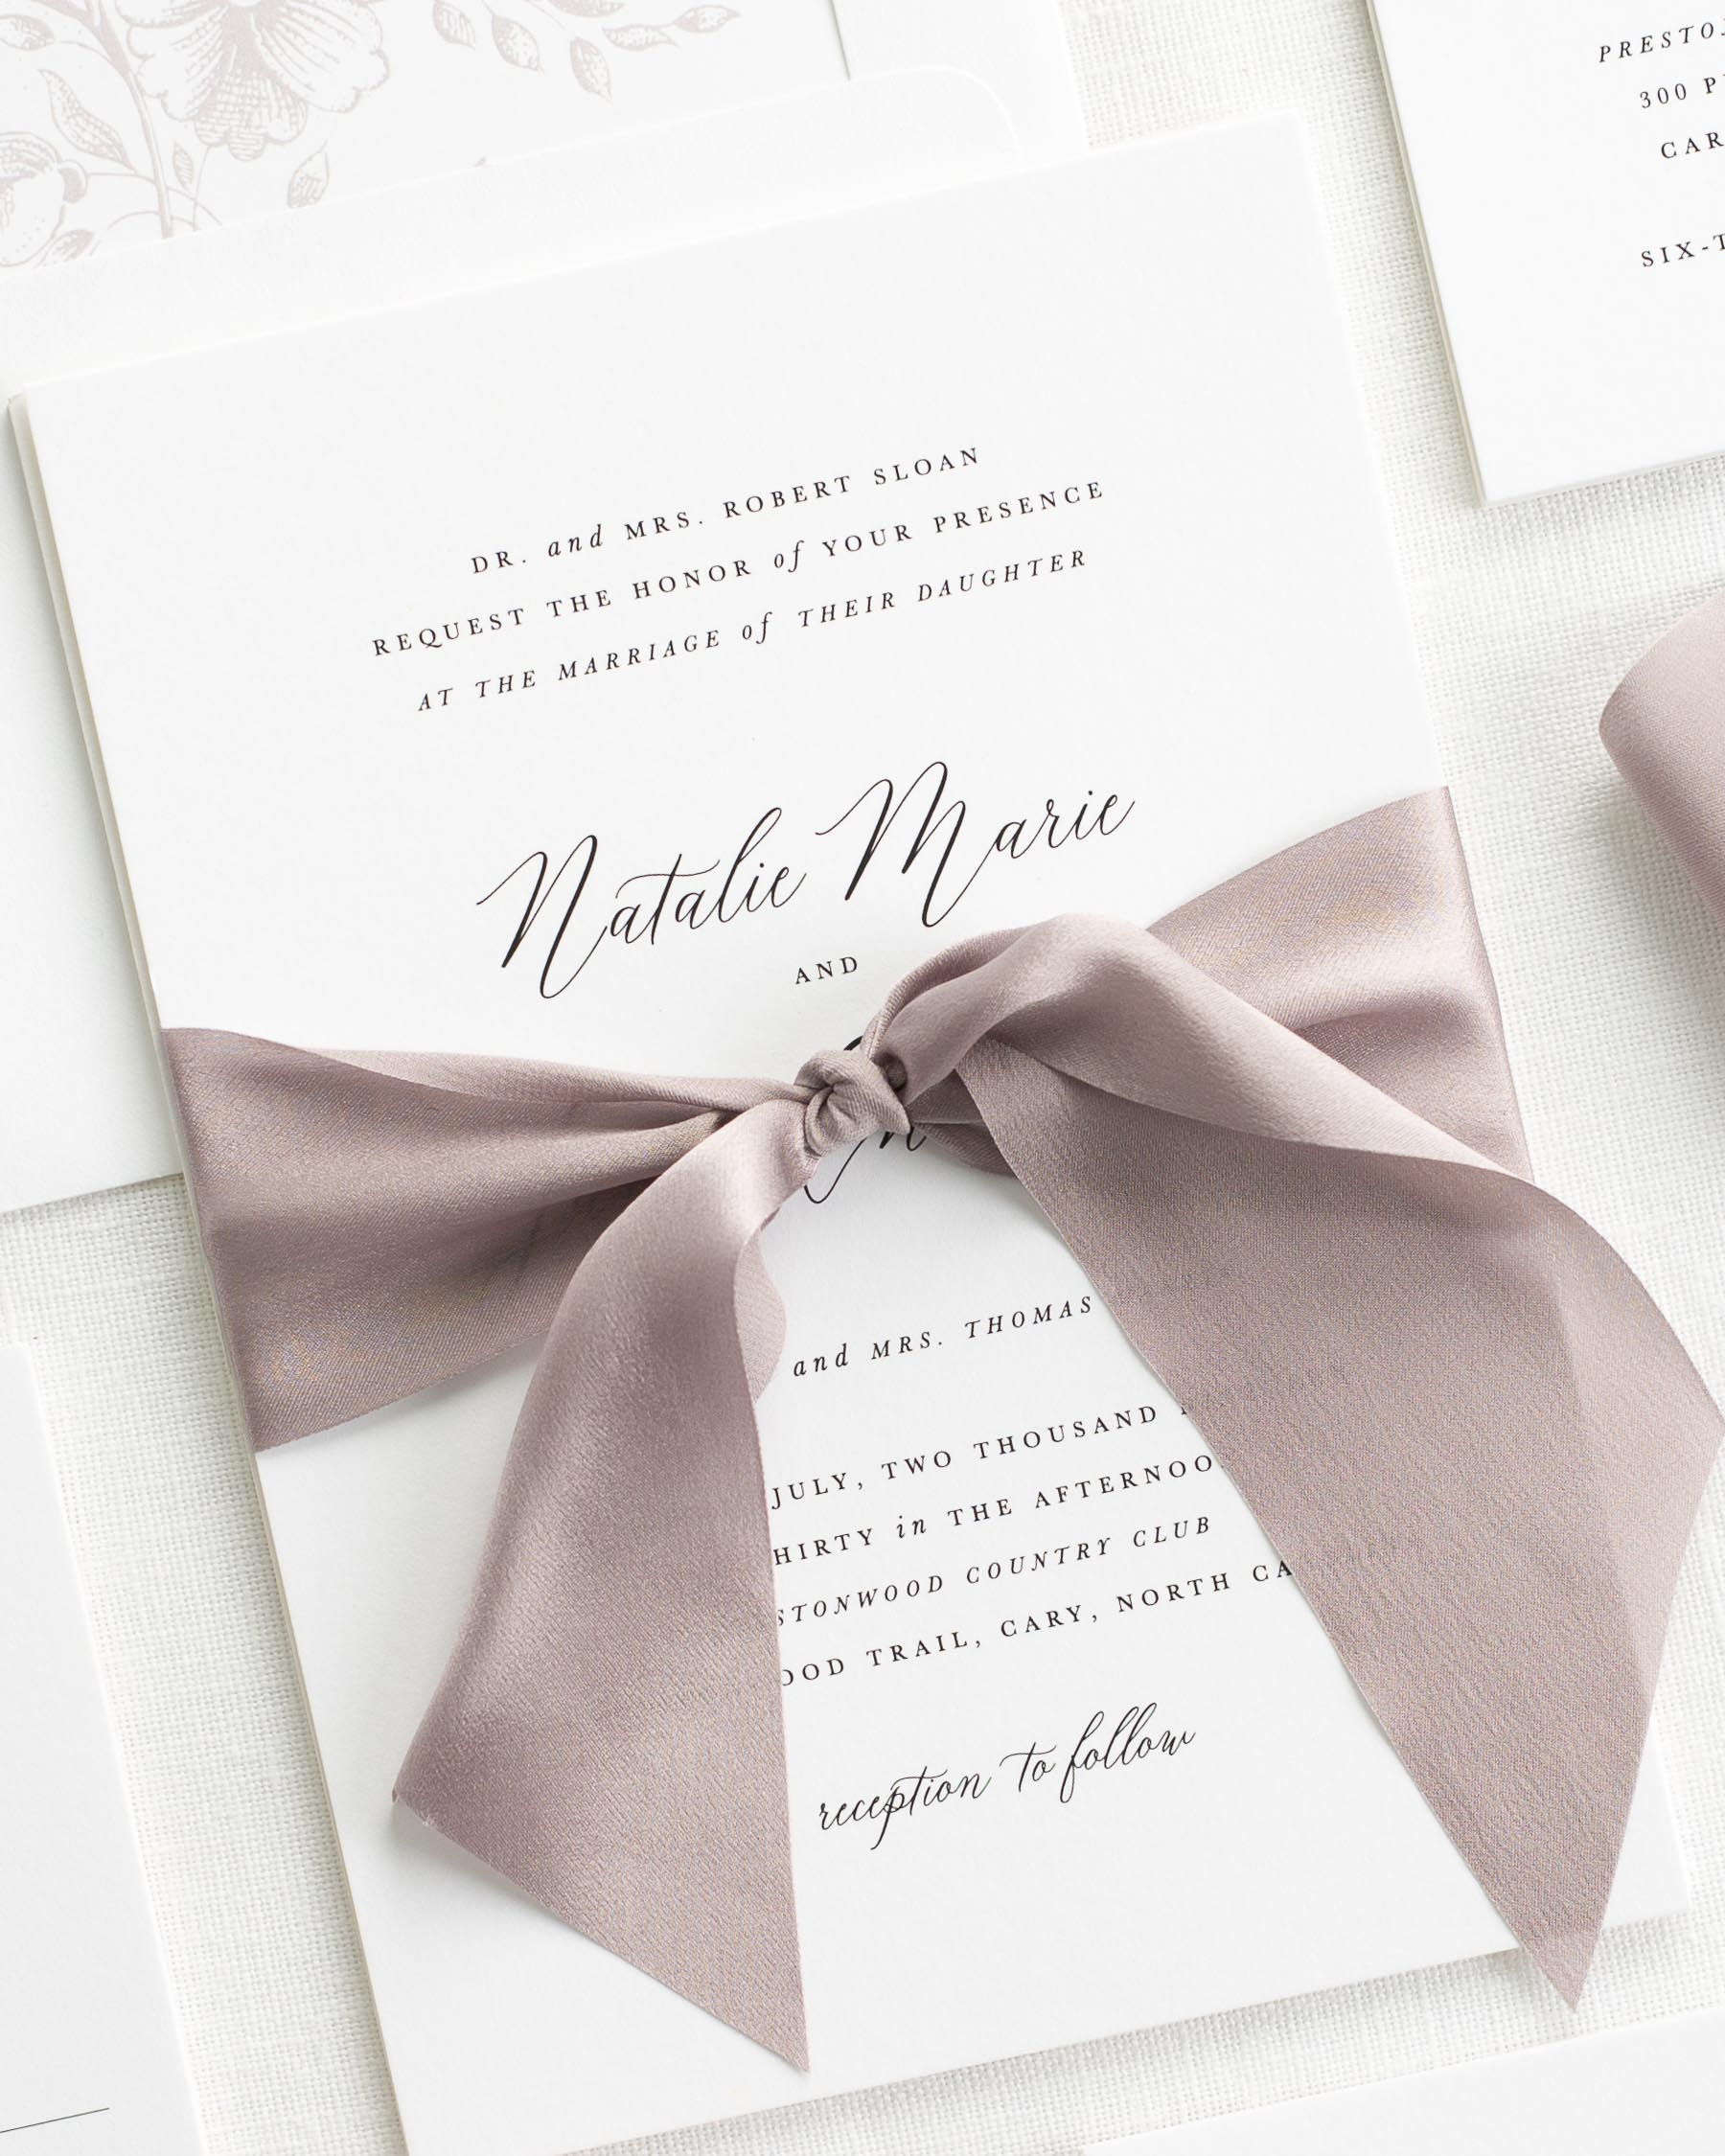 Natalie Ribbon Wedding Invitations